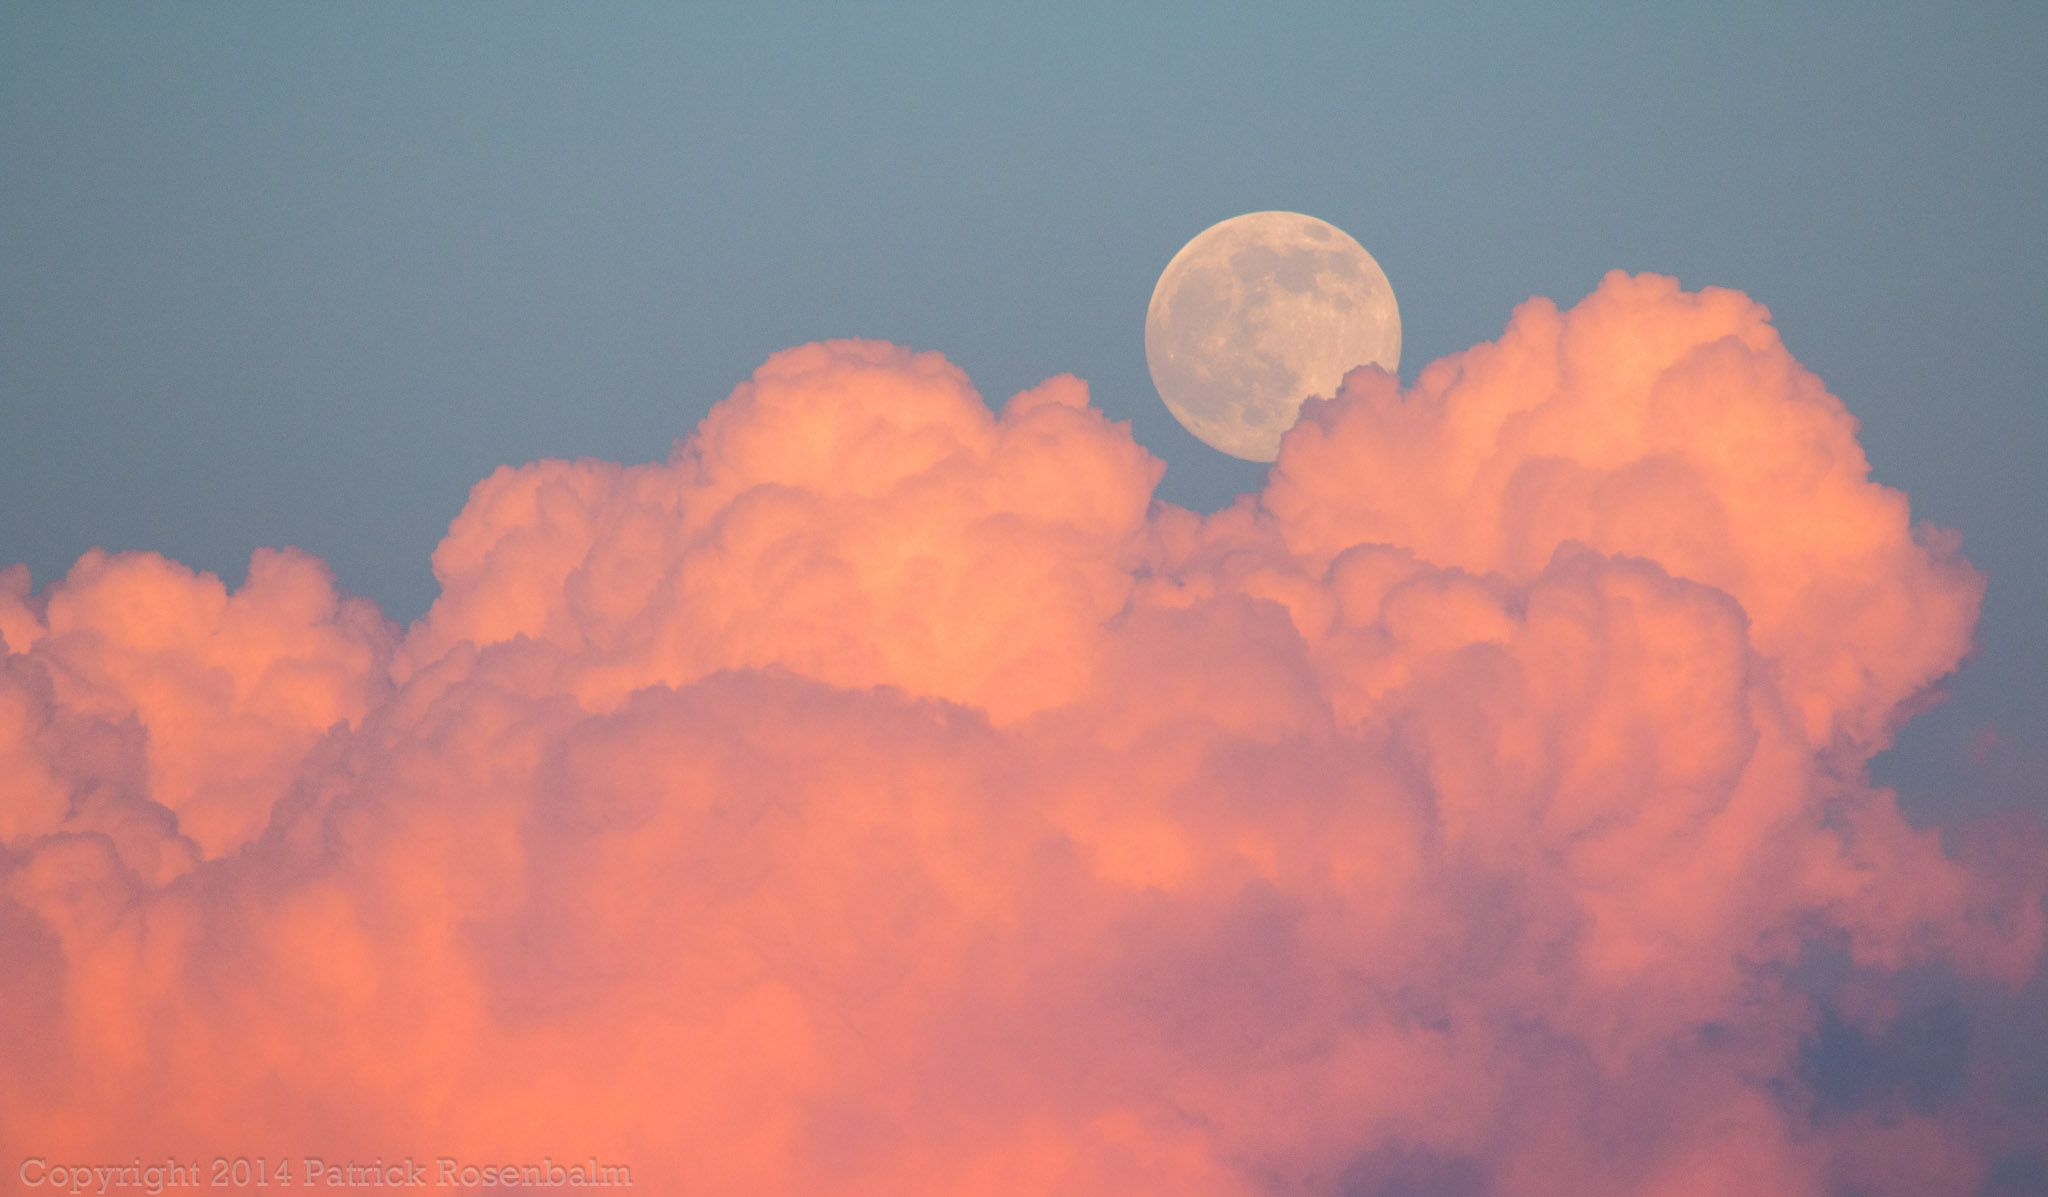 Super Moon And Clouds In 2020 Aesthetic Desktop Wallpaper Desktop Wallpaper Art Sky Aesthetic